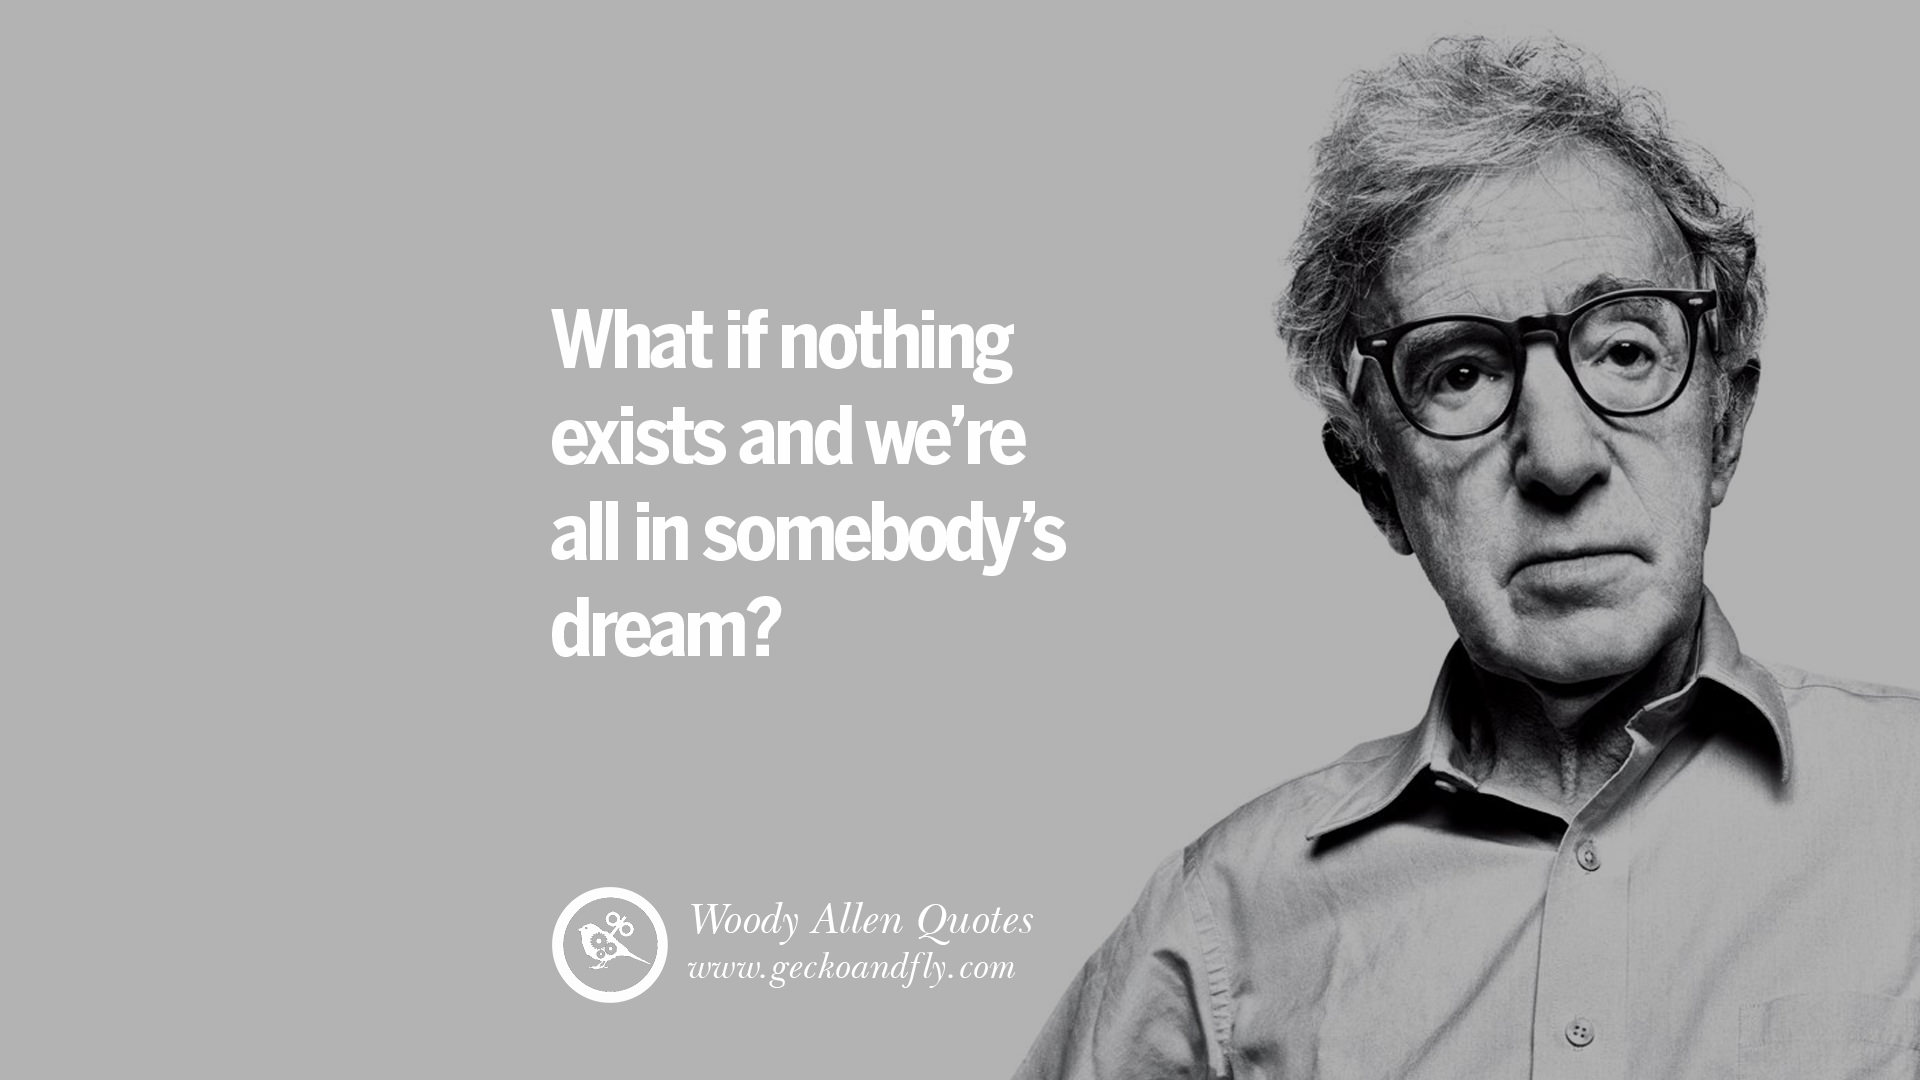 24 Woody Allen Quotes On Movies, Films, Life, Religion And